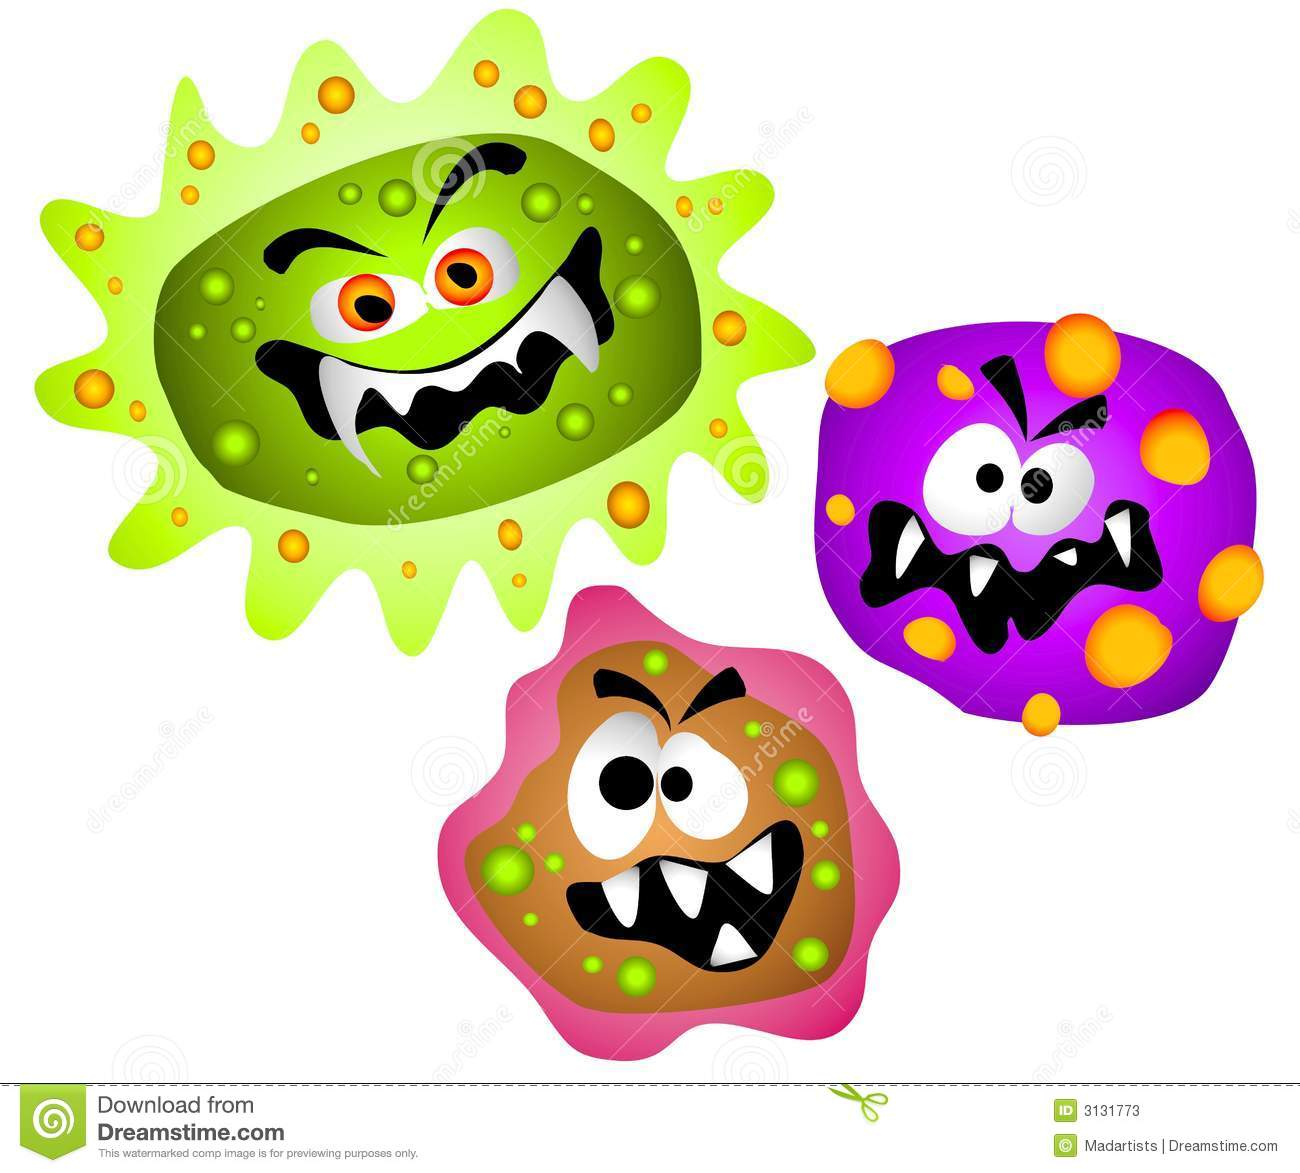 Bacteria clipart Clipart cliparts Infection Bacteria Art